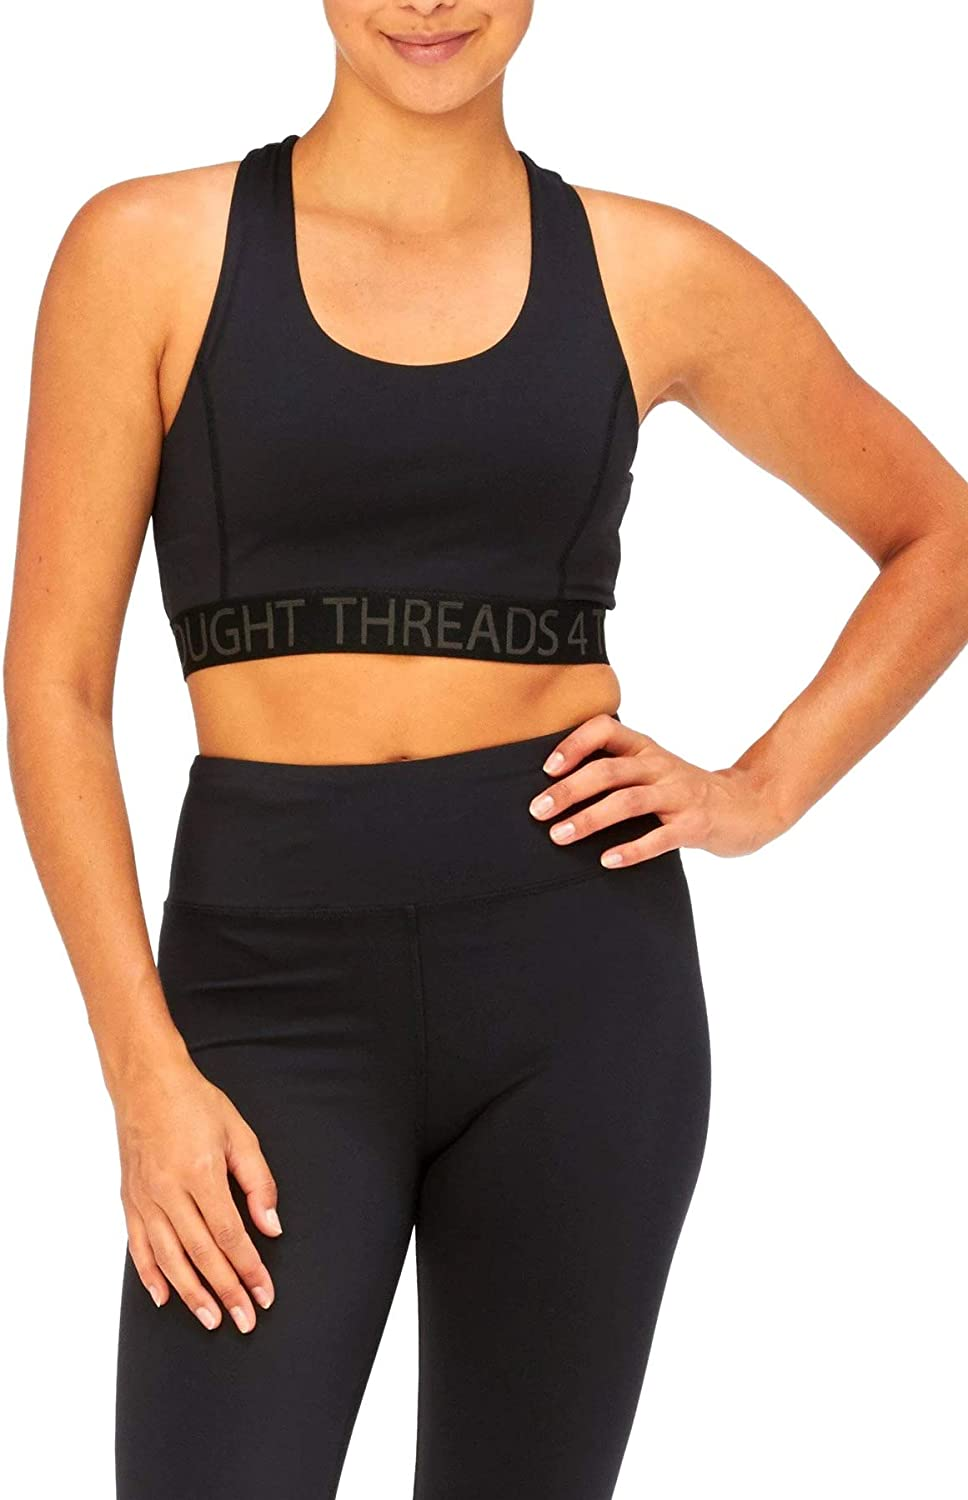 Threads 4 Thought デポー 即納送料無料 Womens Bra Sports Wrap Tranquil